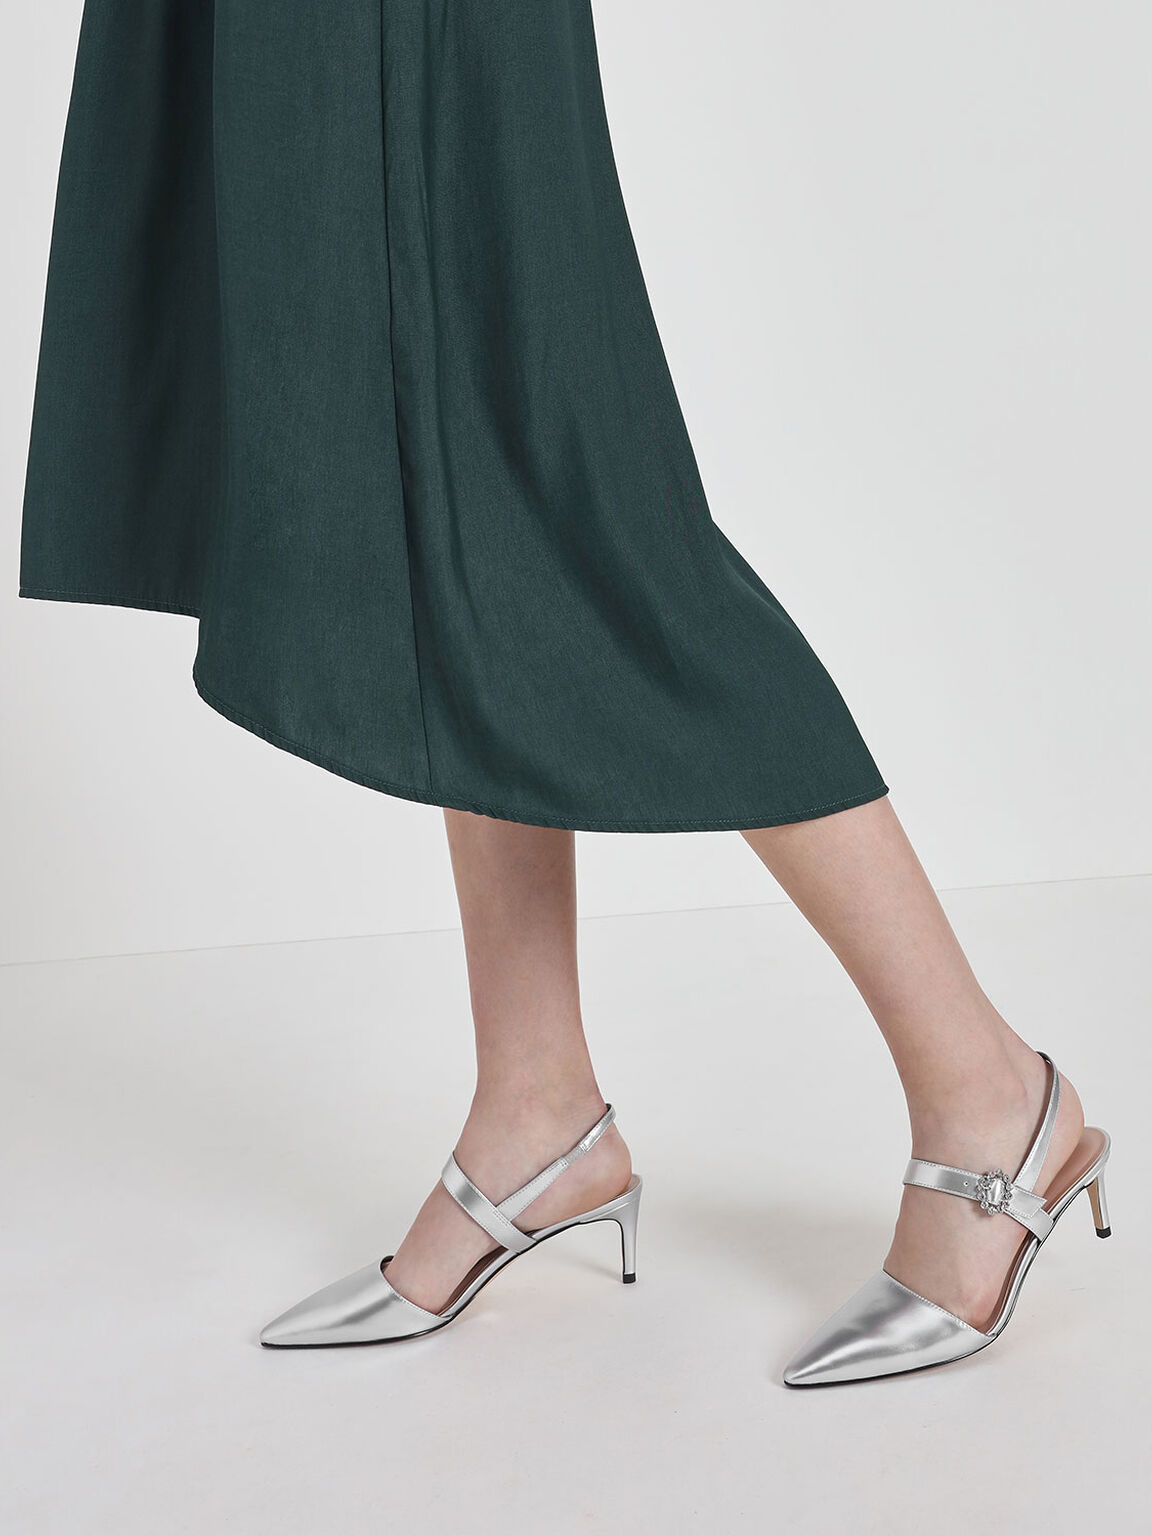 Metallic Mary Jane Slingback Pumps, Silver, hi-res